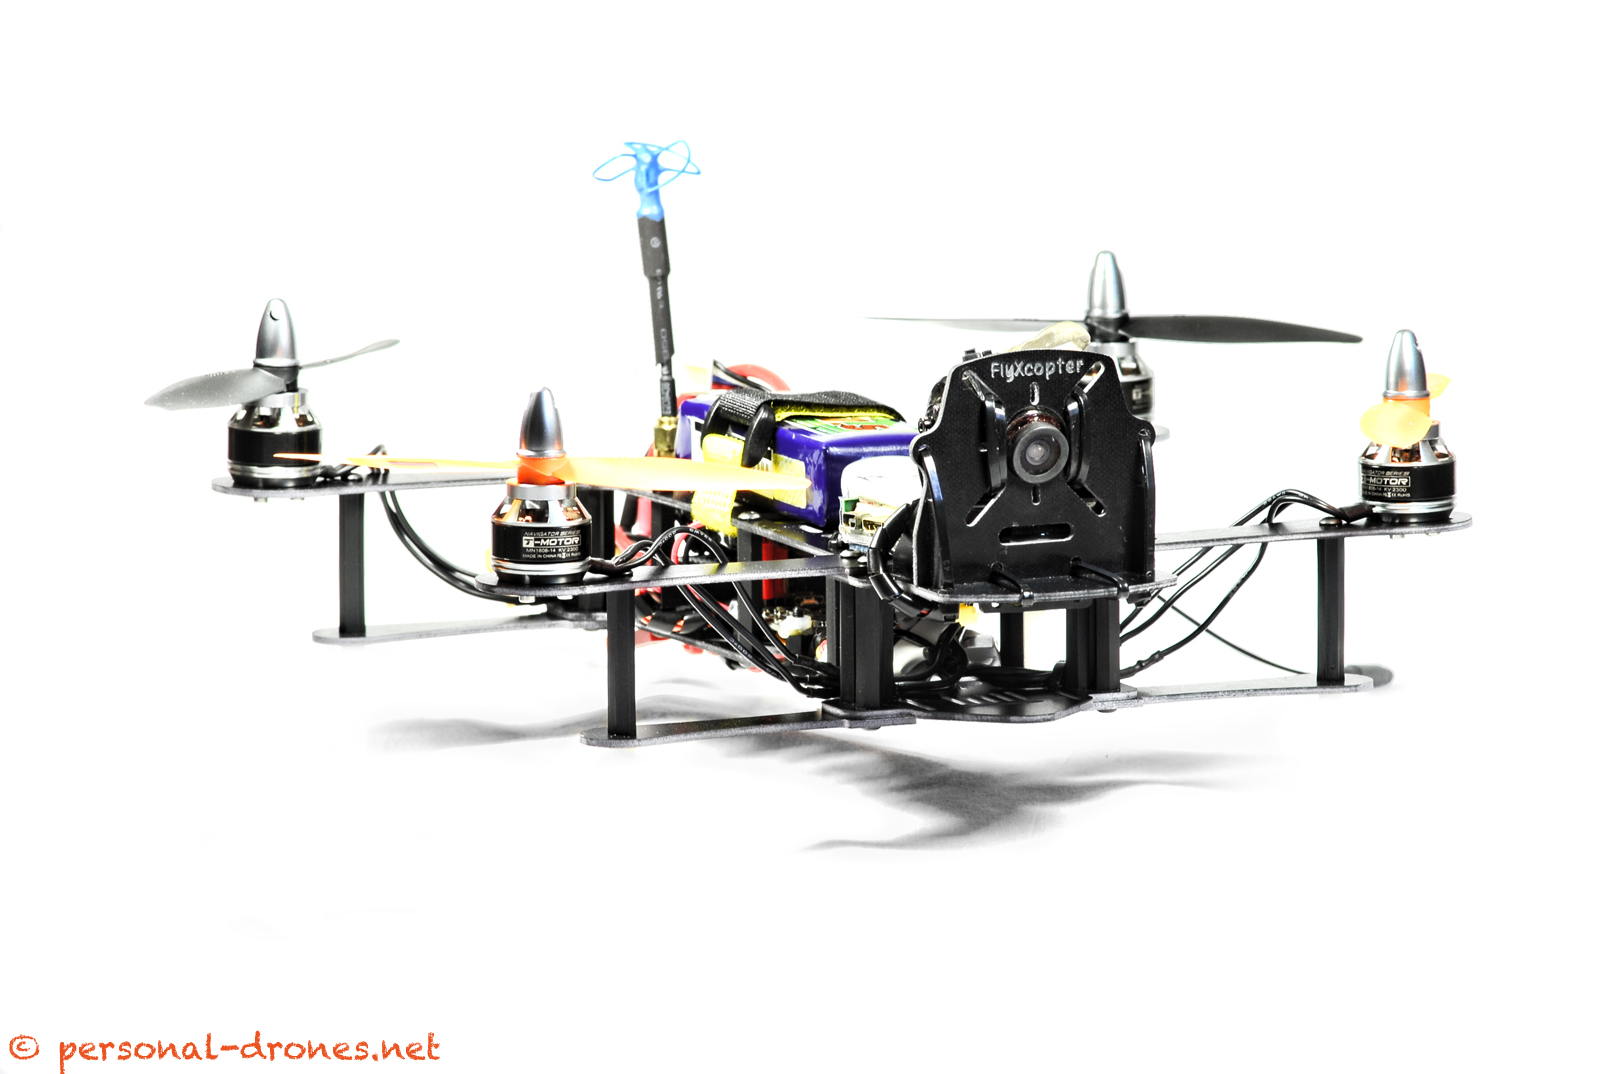 FlyXcopter FlyXmini quadcopter